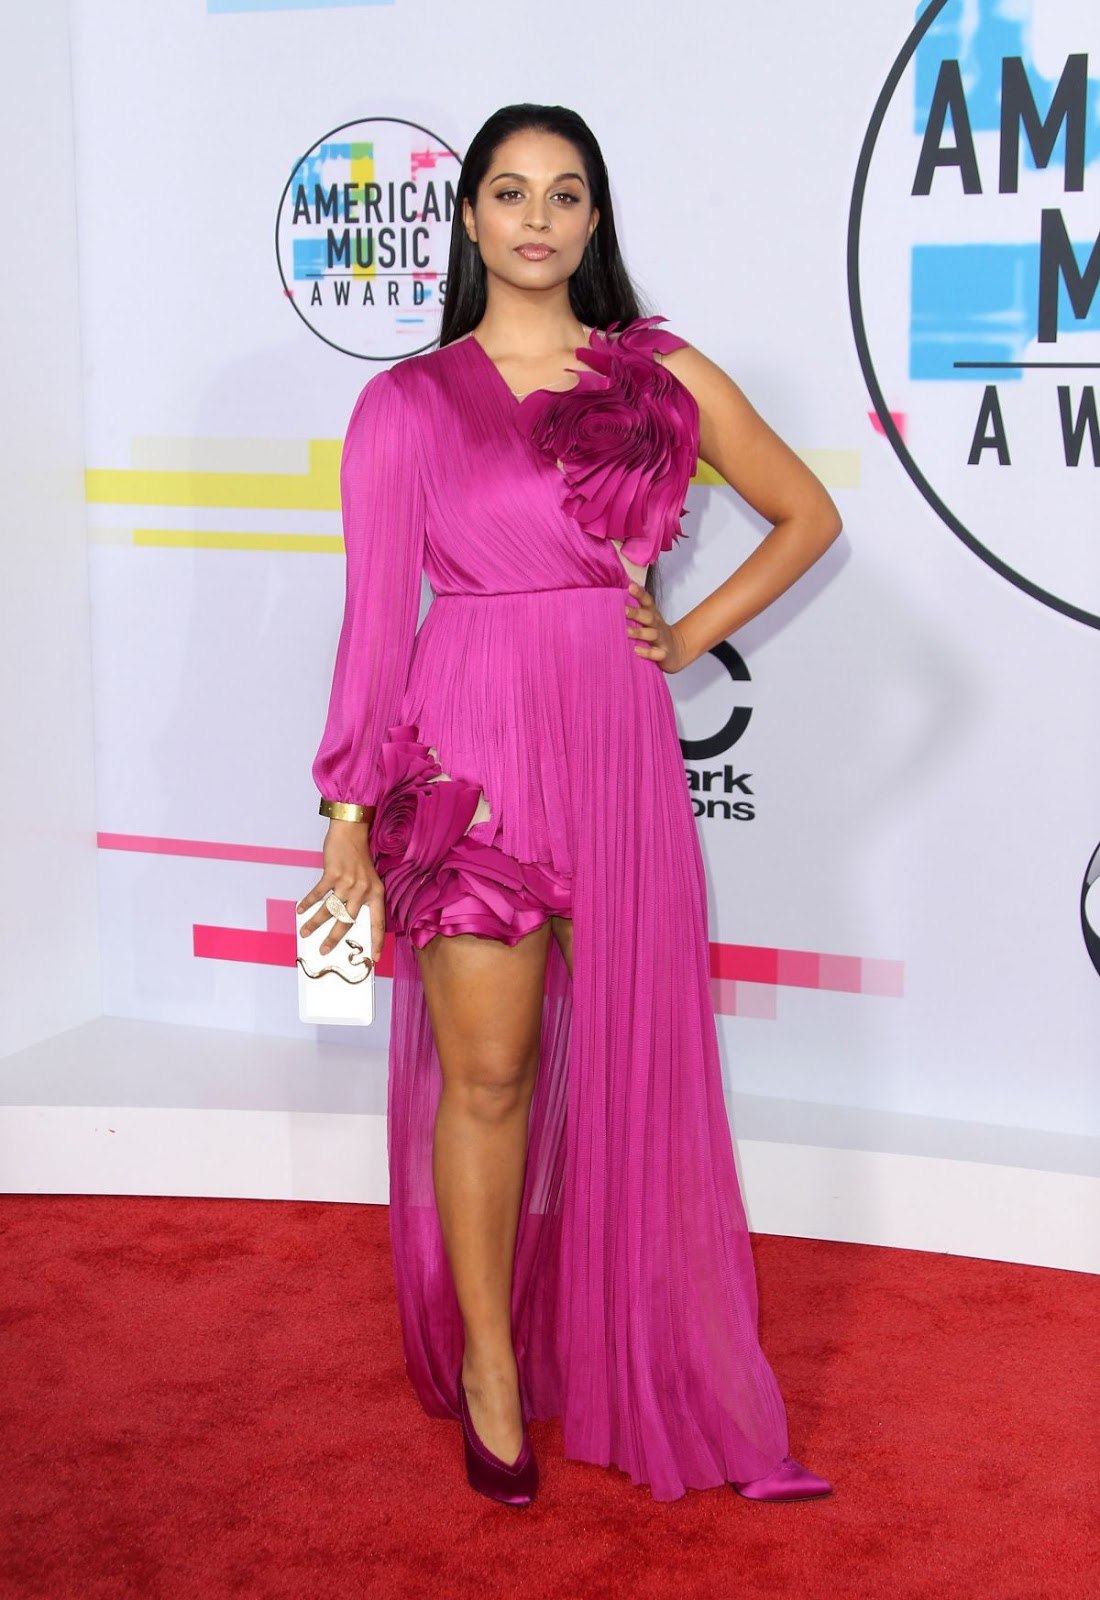 Photos of Canadian YouTuber Lilly Singh at American Music Awards 2017 at Microsoft Theater in Los Angeles